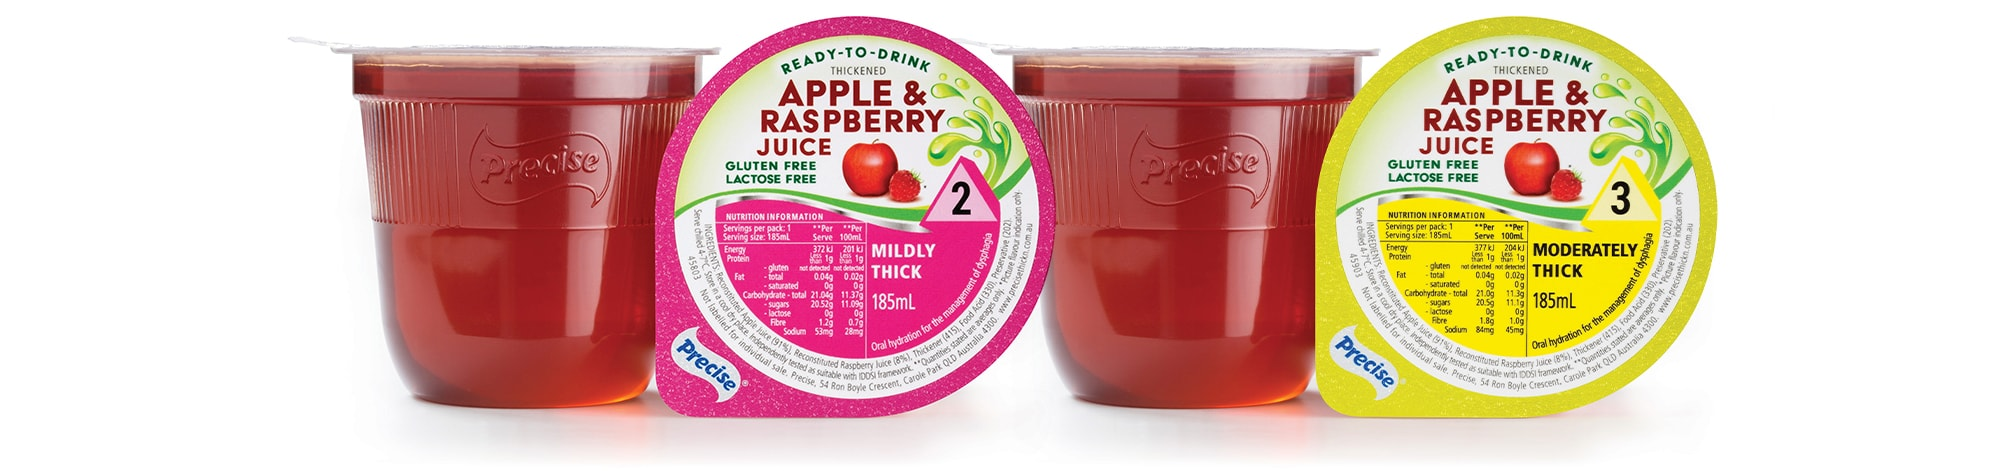 RTD Apple and Raspberry Juice